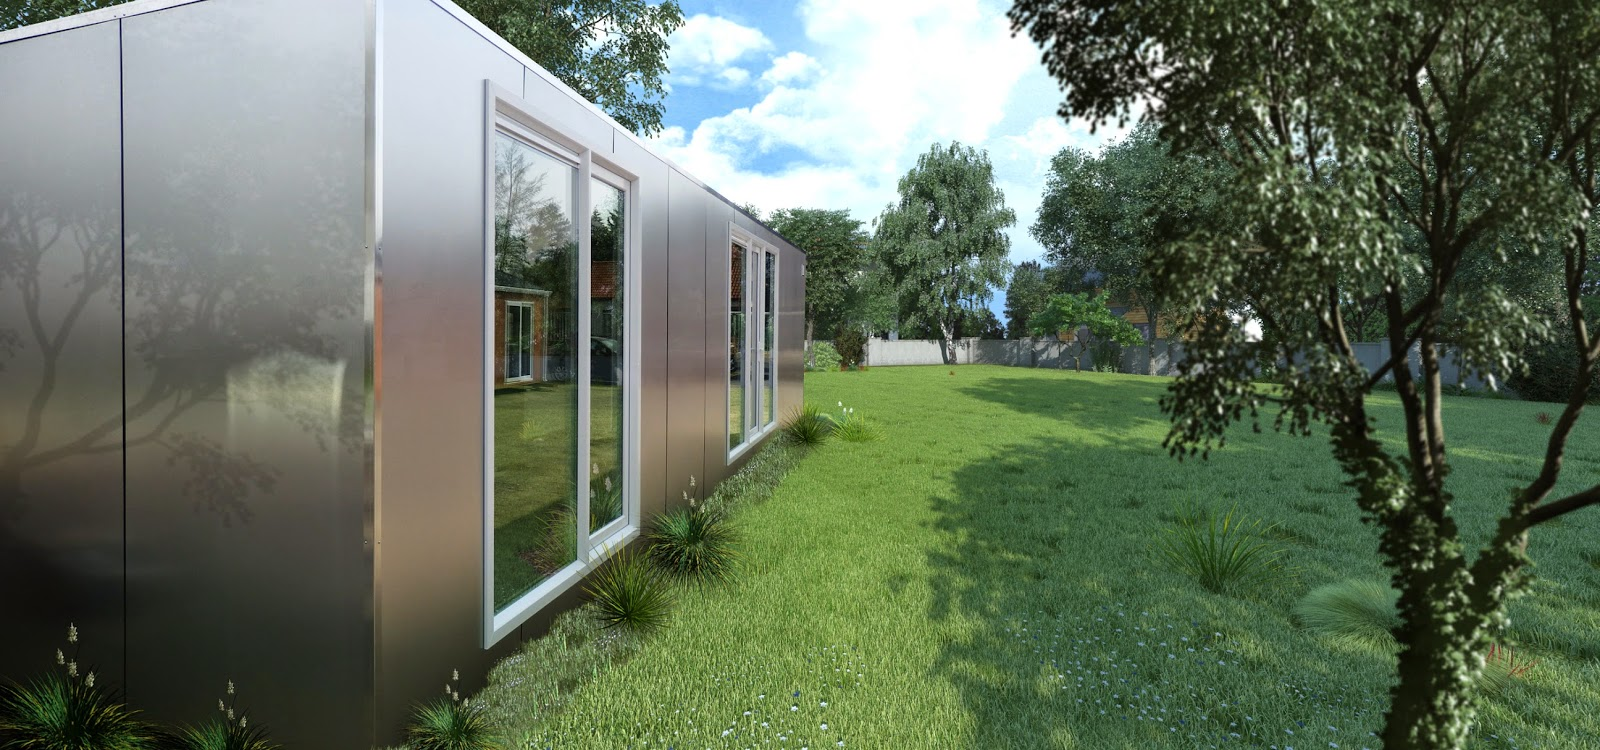 Shipping container homes affordable shipping container home by living project - Bithcin shipping container house ii ...